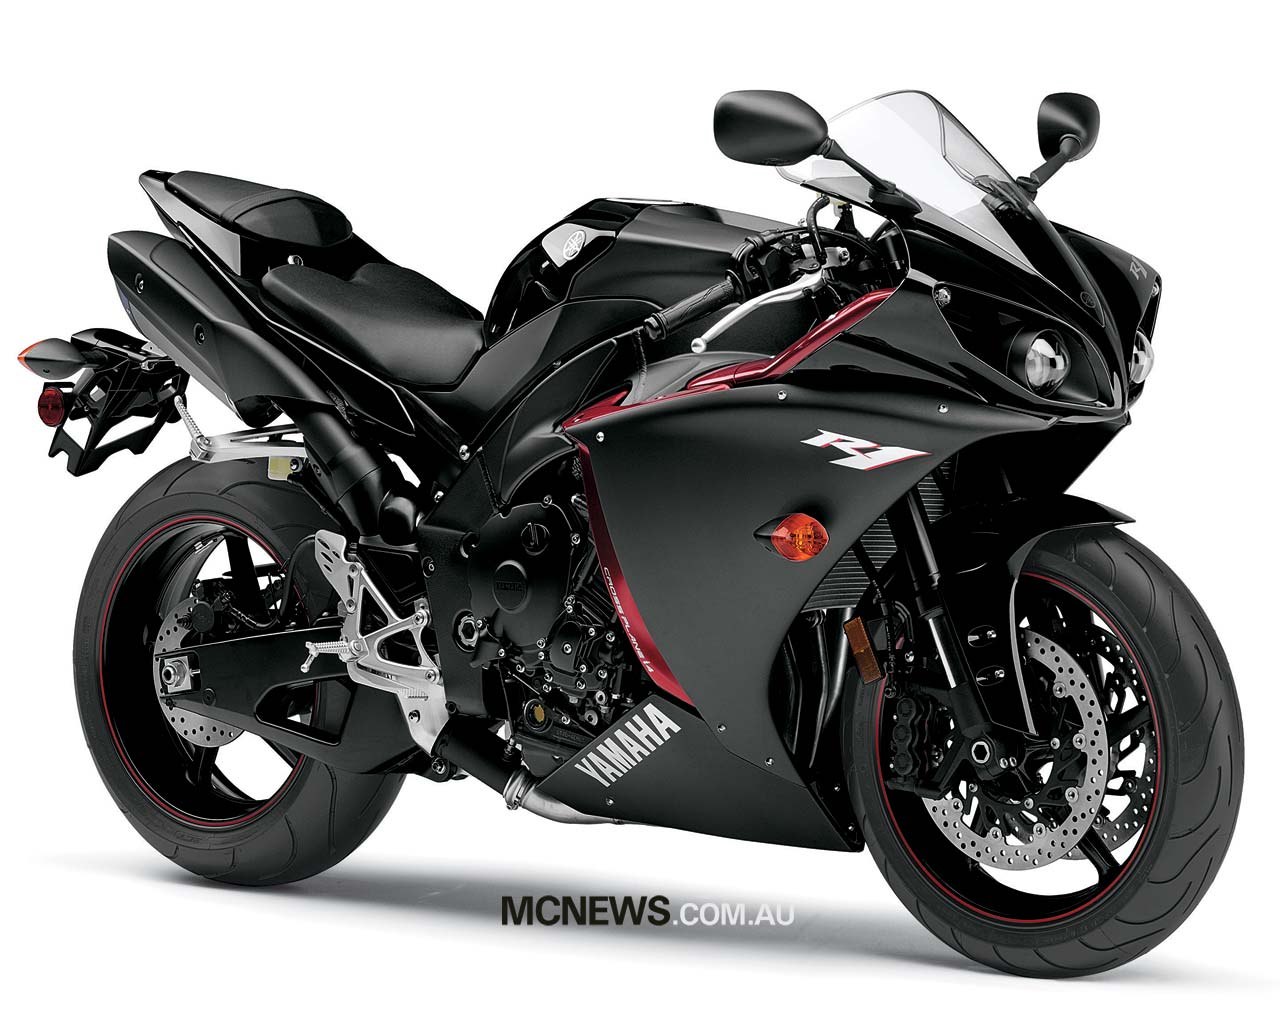 COOL IMAGES Yamaha R1 Wallpapers 1280x1024